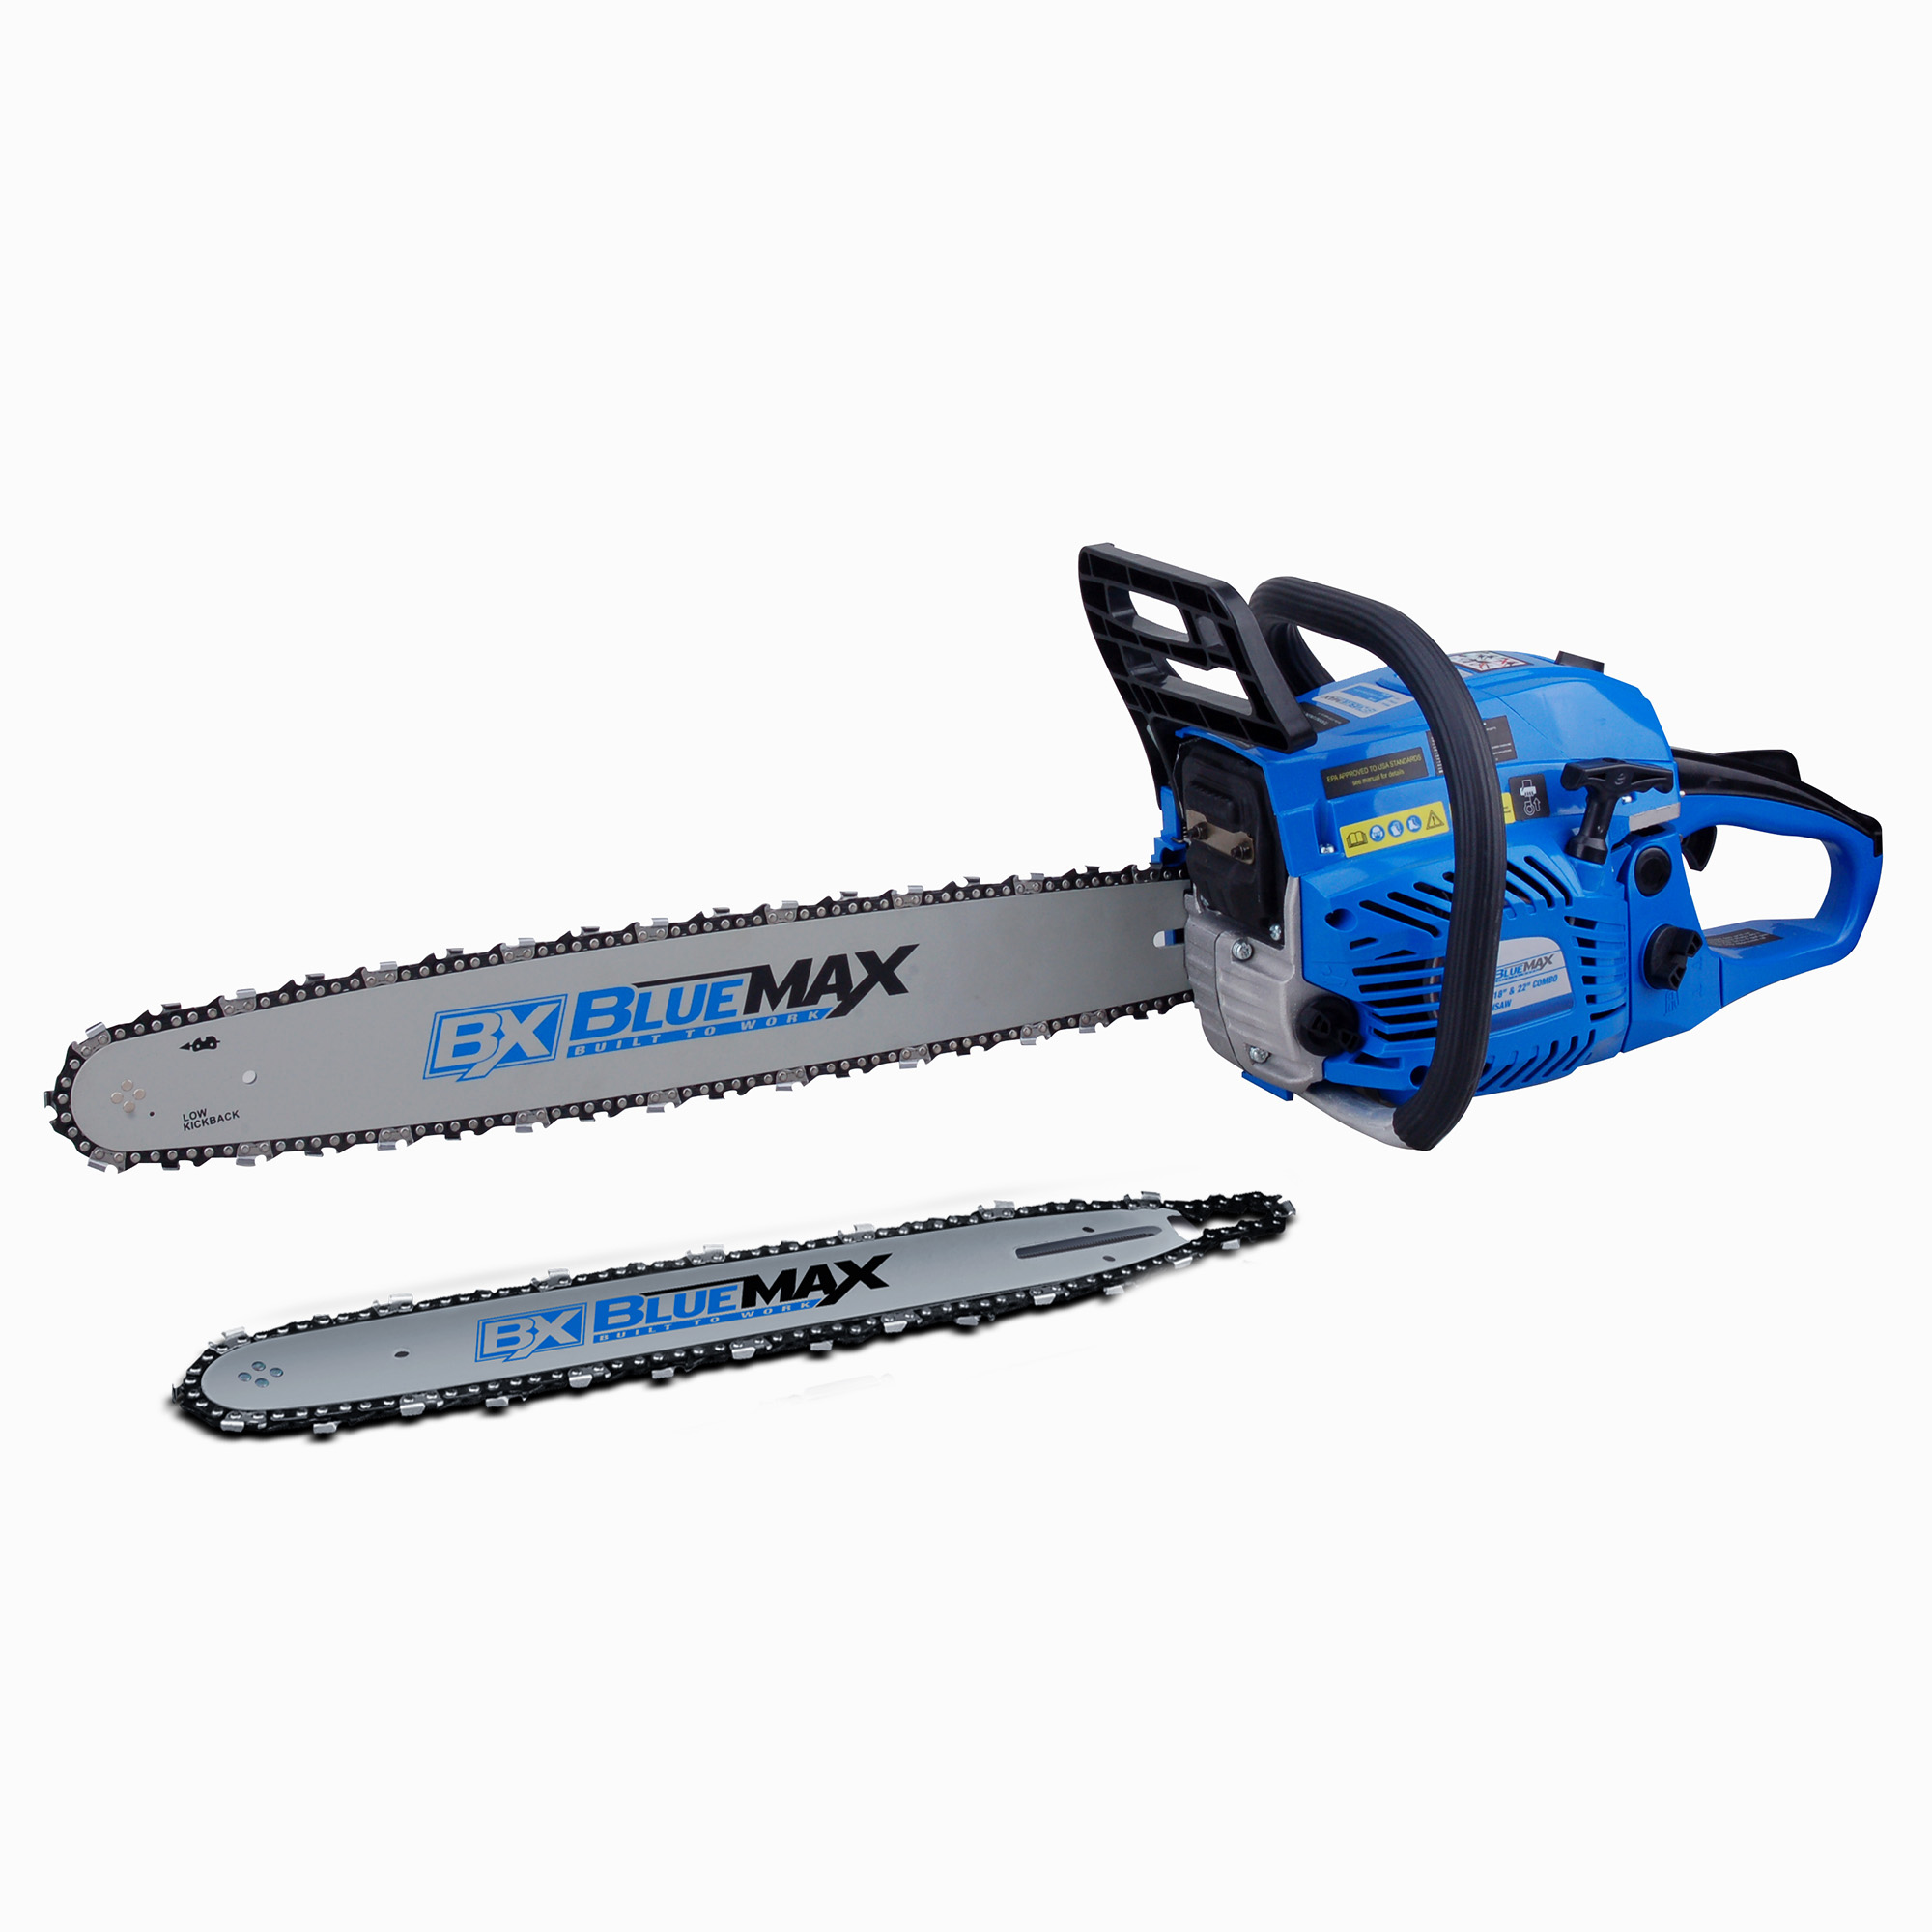 Blue Max 57cc 18in   22in Combo Chainsaw by NATI